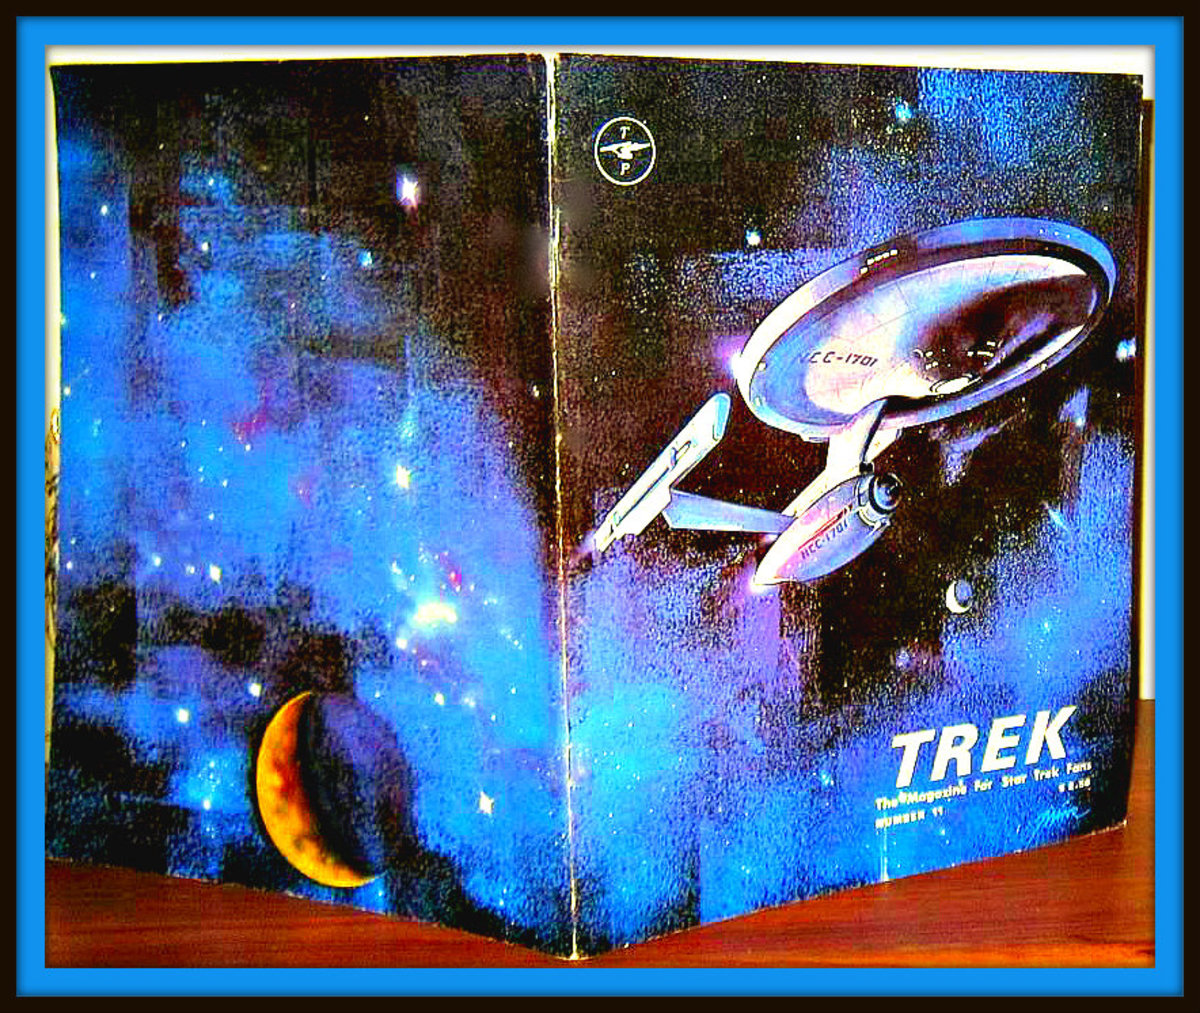 TREK # 11, The Magazine for Star Trek Fans. Printed in Houston Texas in July 1978. This is another hard to find issue there were only about 2,000 made of each issue back in these early days of the magazine.